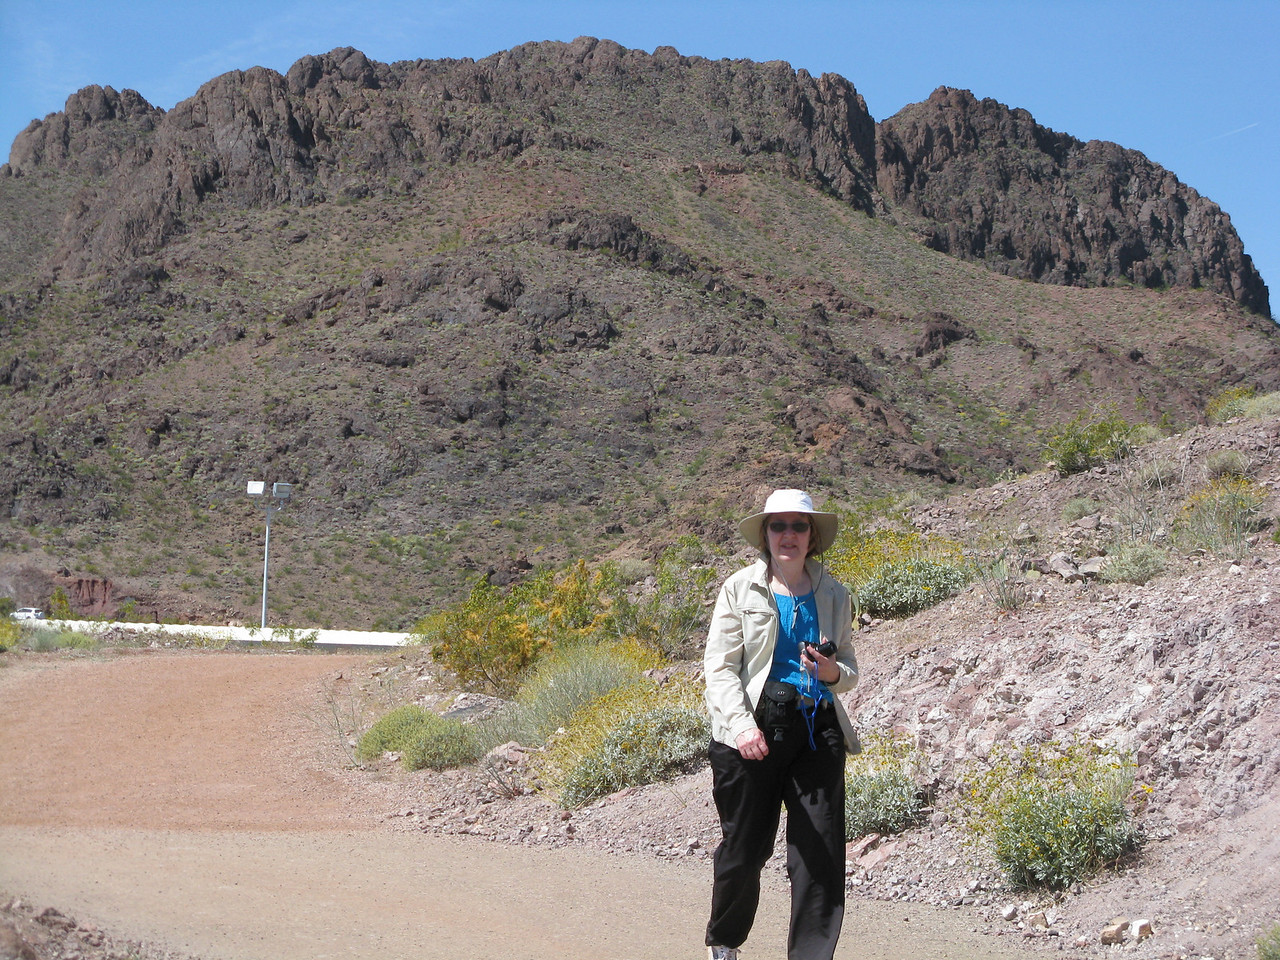 Mary is walking around a broad curve in the trail as she heads downhill towards Hoover Dam.